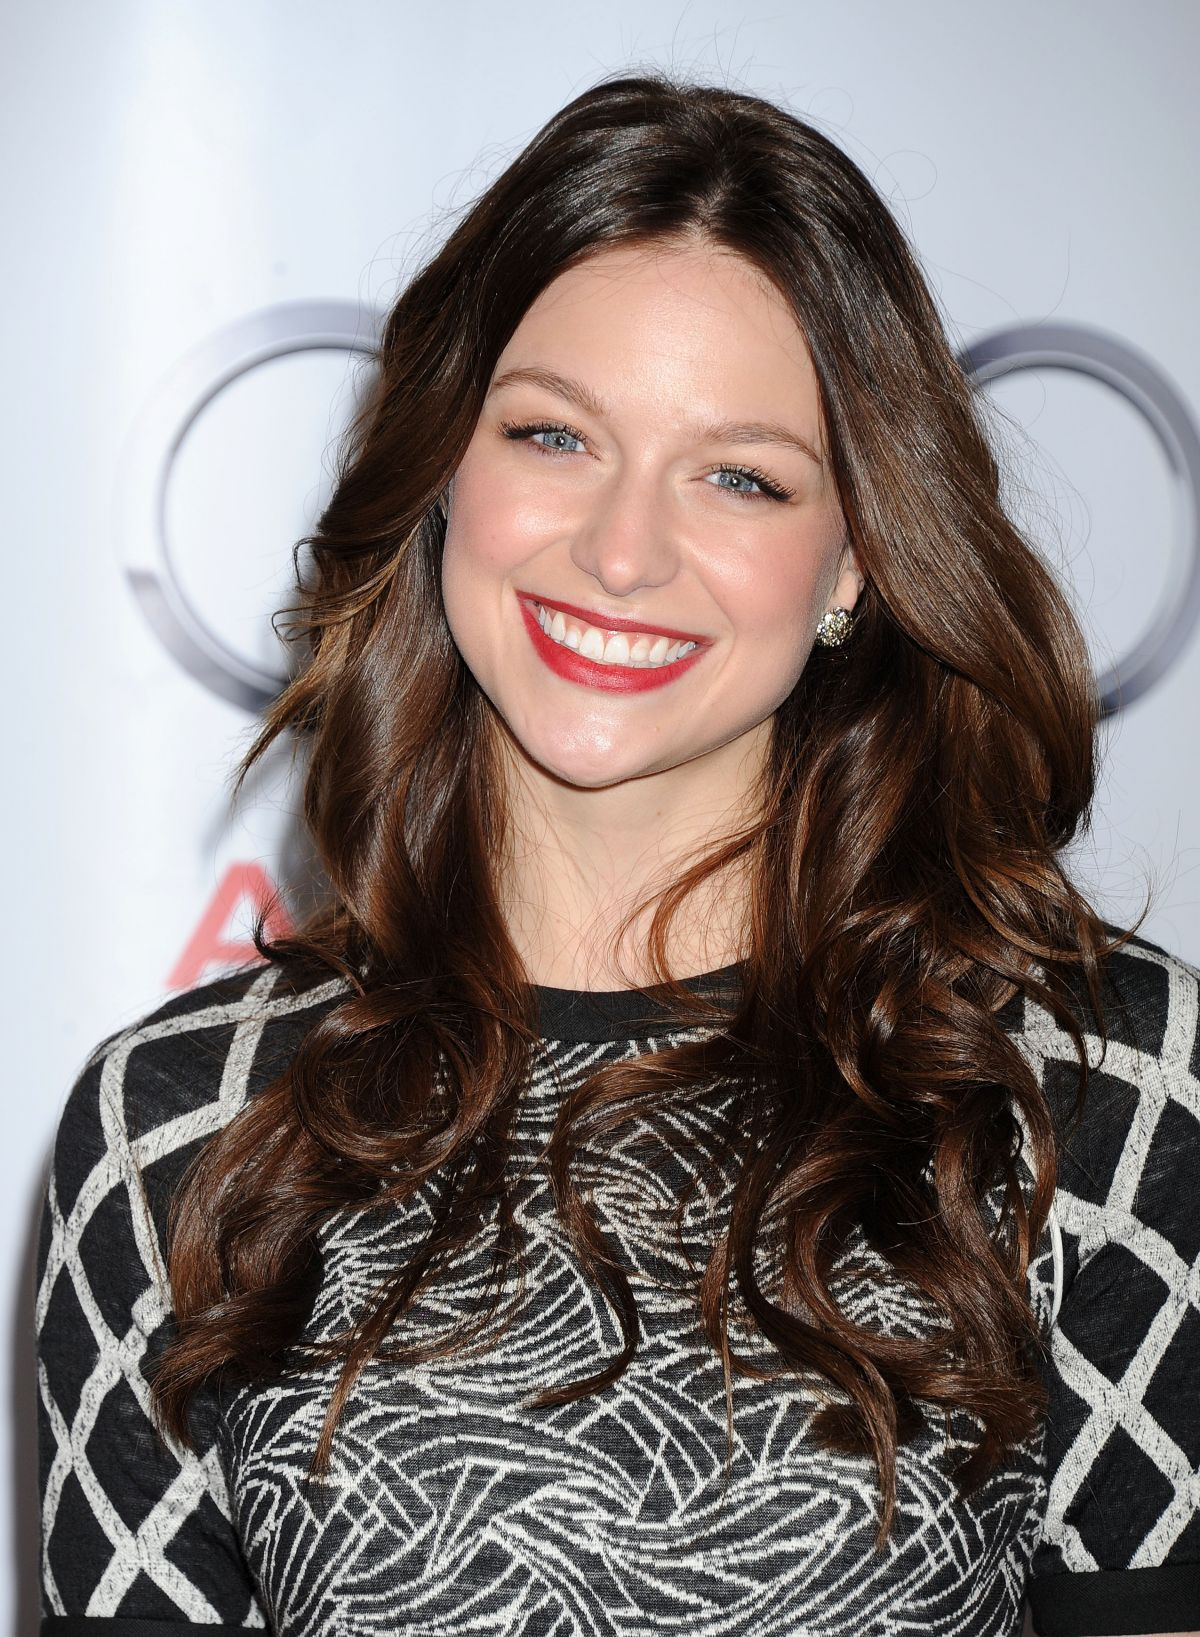 Confirmed – Melissa Benoist Is The New Supergirl